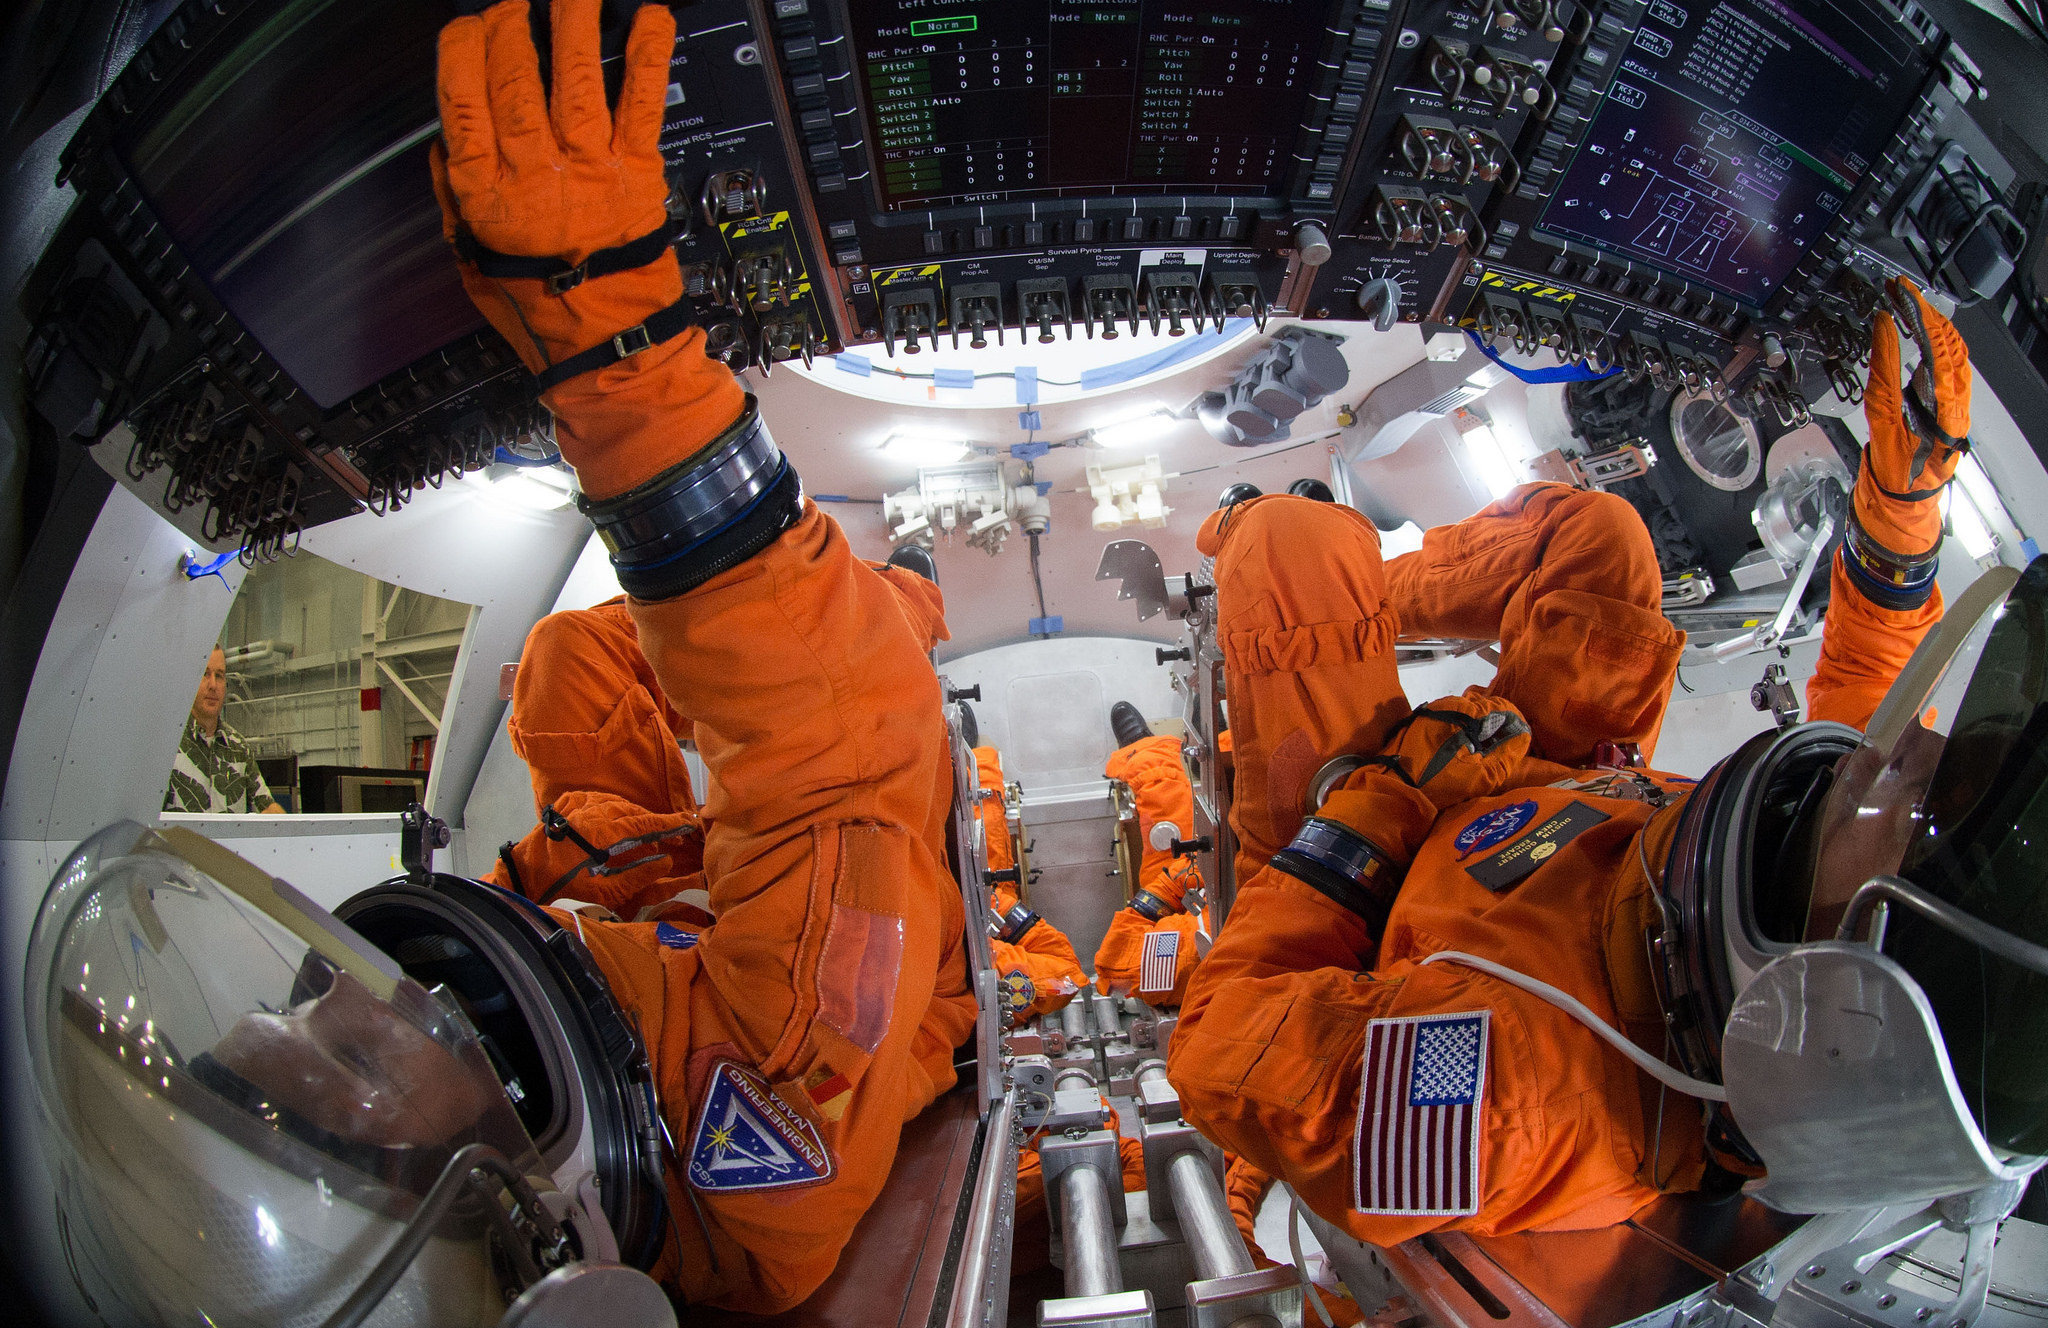 Spacesuit engineers demonstrate how four crew members would be arranged for launch inside the Orion spacecraft, using a mockup of the vehicle at Johnson Space Center. Astronauts will board Orion for a first crewed flight in 2021, and NASA hopes send humans to Mars in Orion in the 2030s